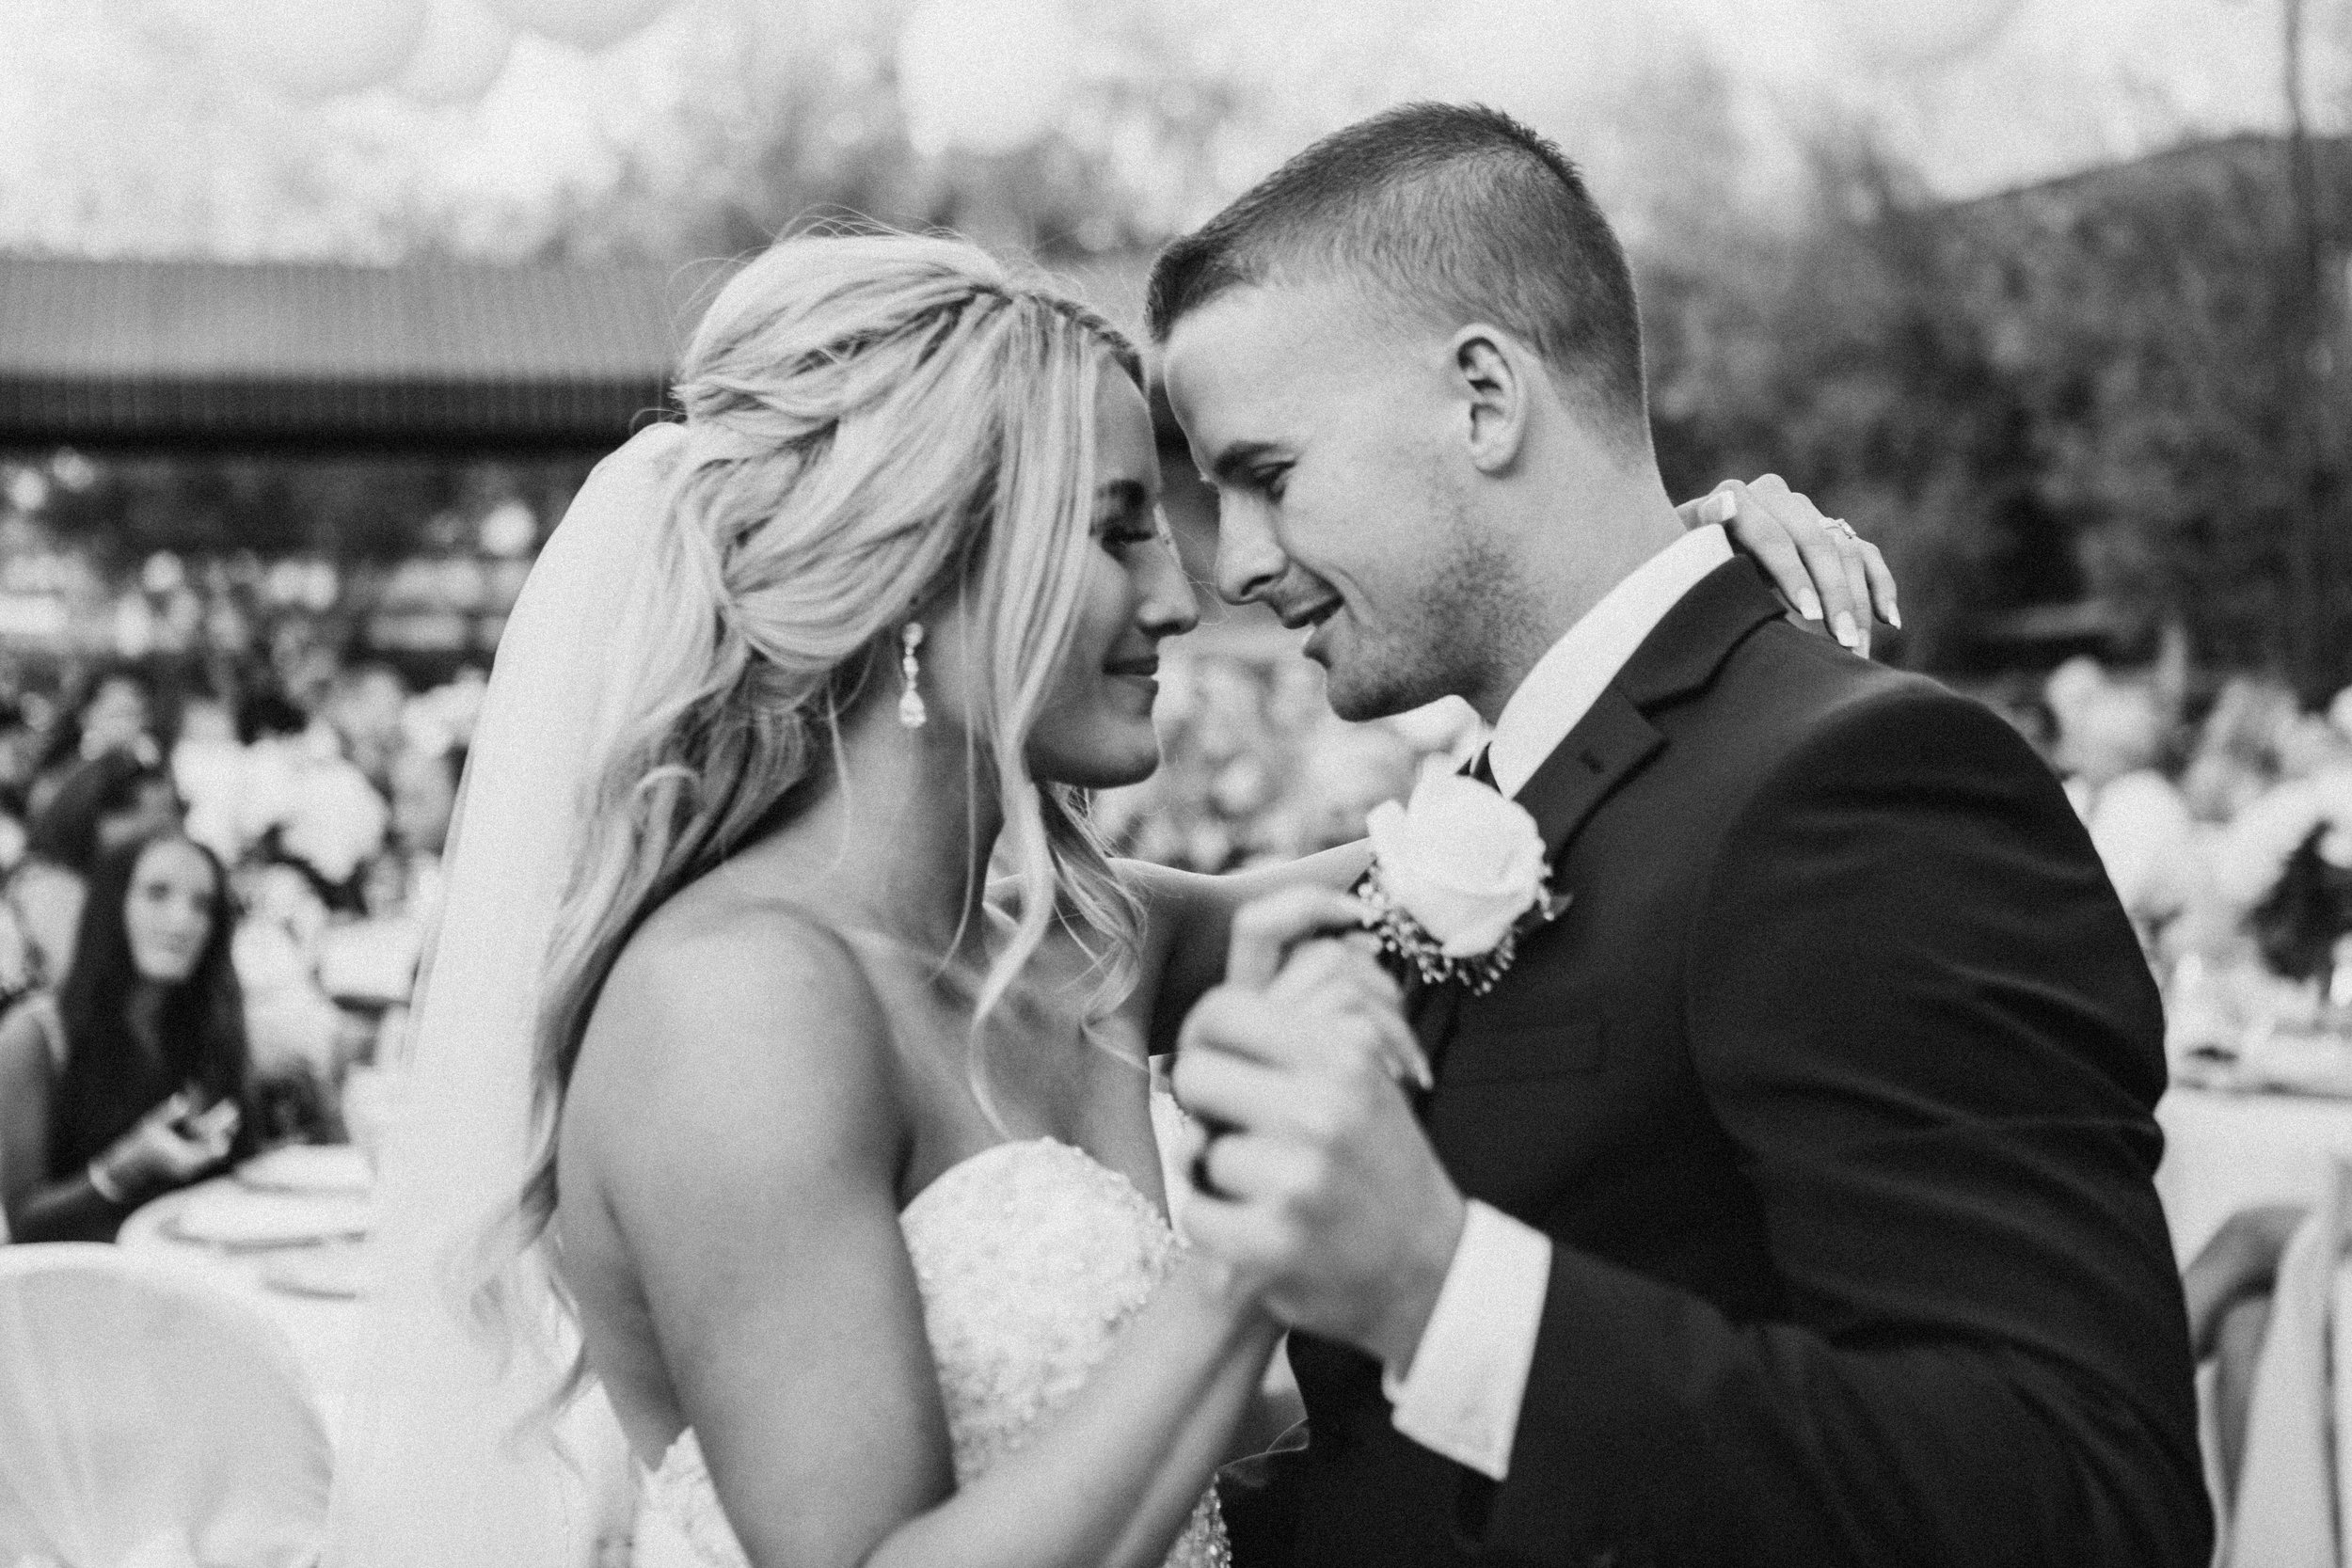 Tiffany & Jonathan: Temecula CA Wedding. - Everyone looked gorgeous. Tears mixed with laughter dominated the evening …. click view story to read full post